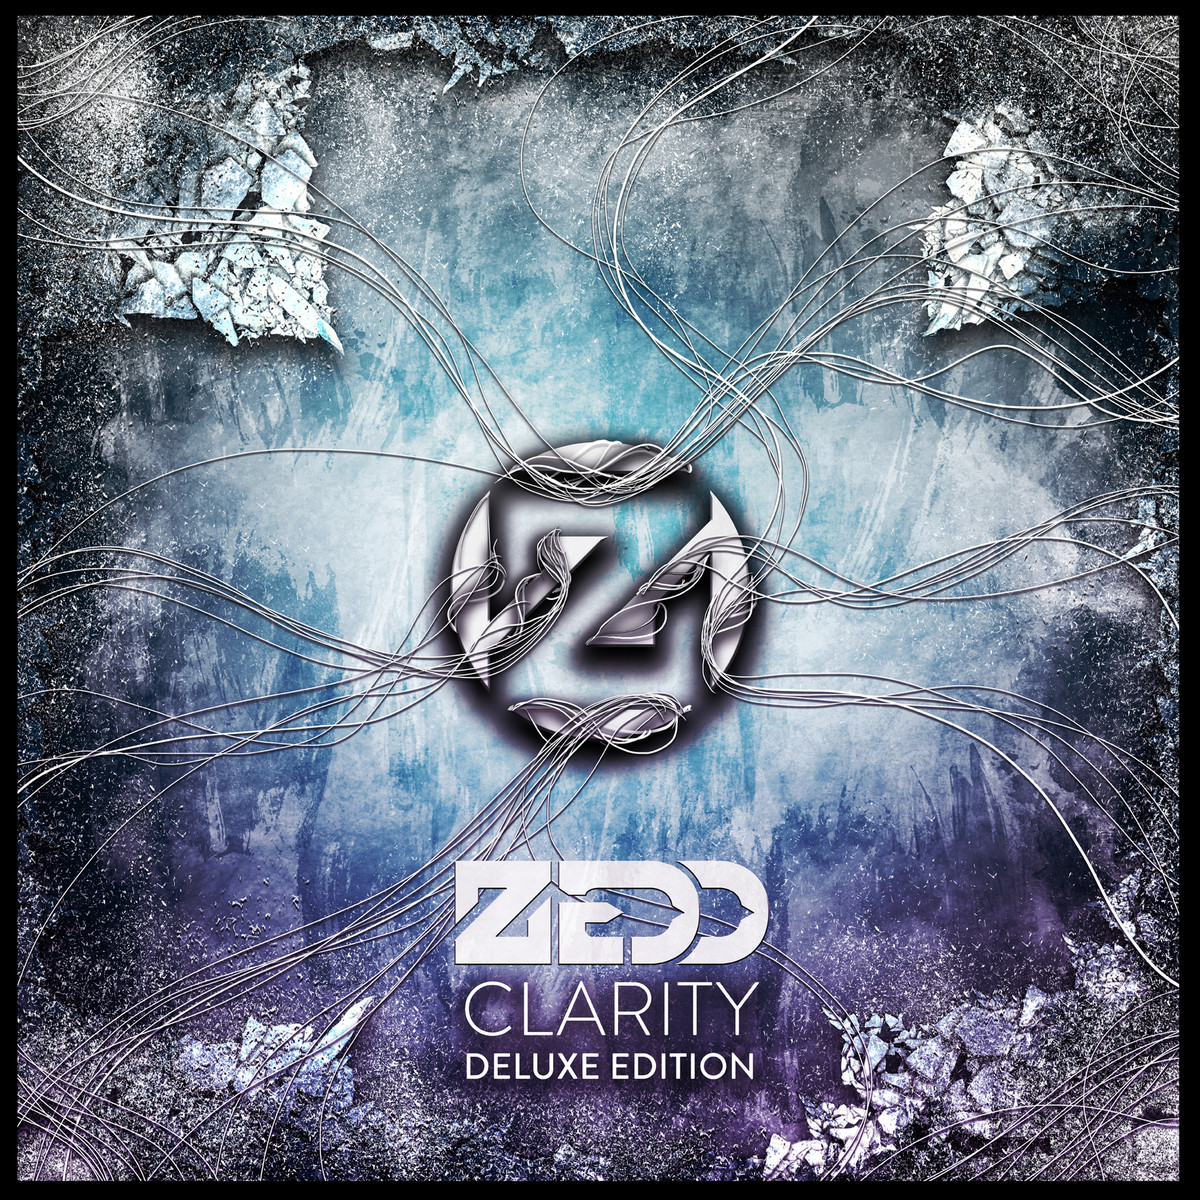 Zeed - CLARITY (Deluxe Extended + Japanese Version) (2013)